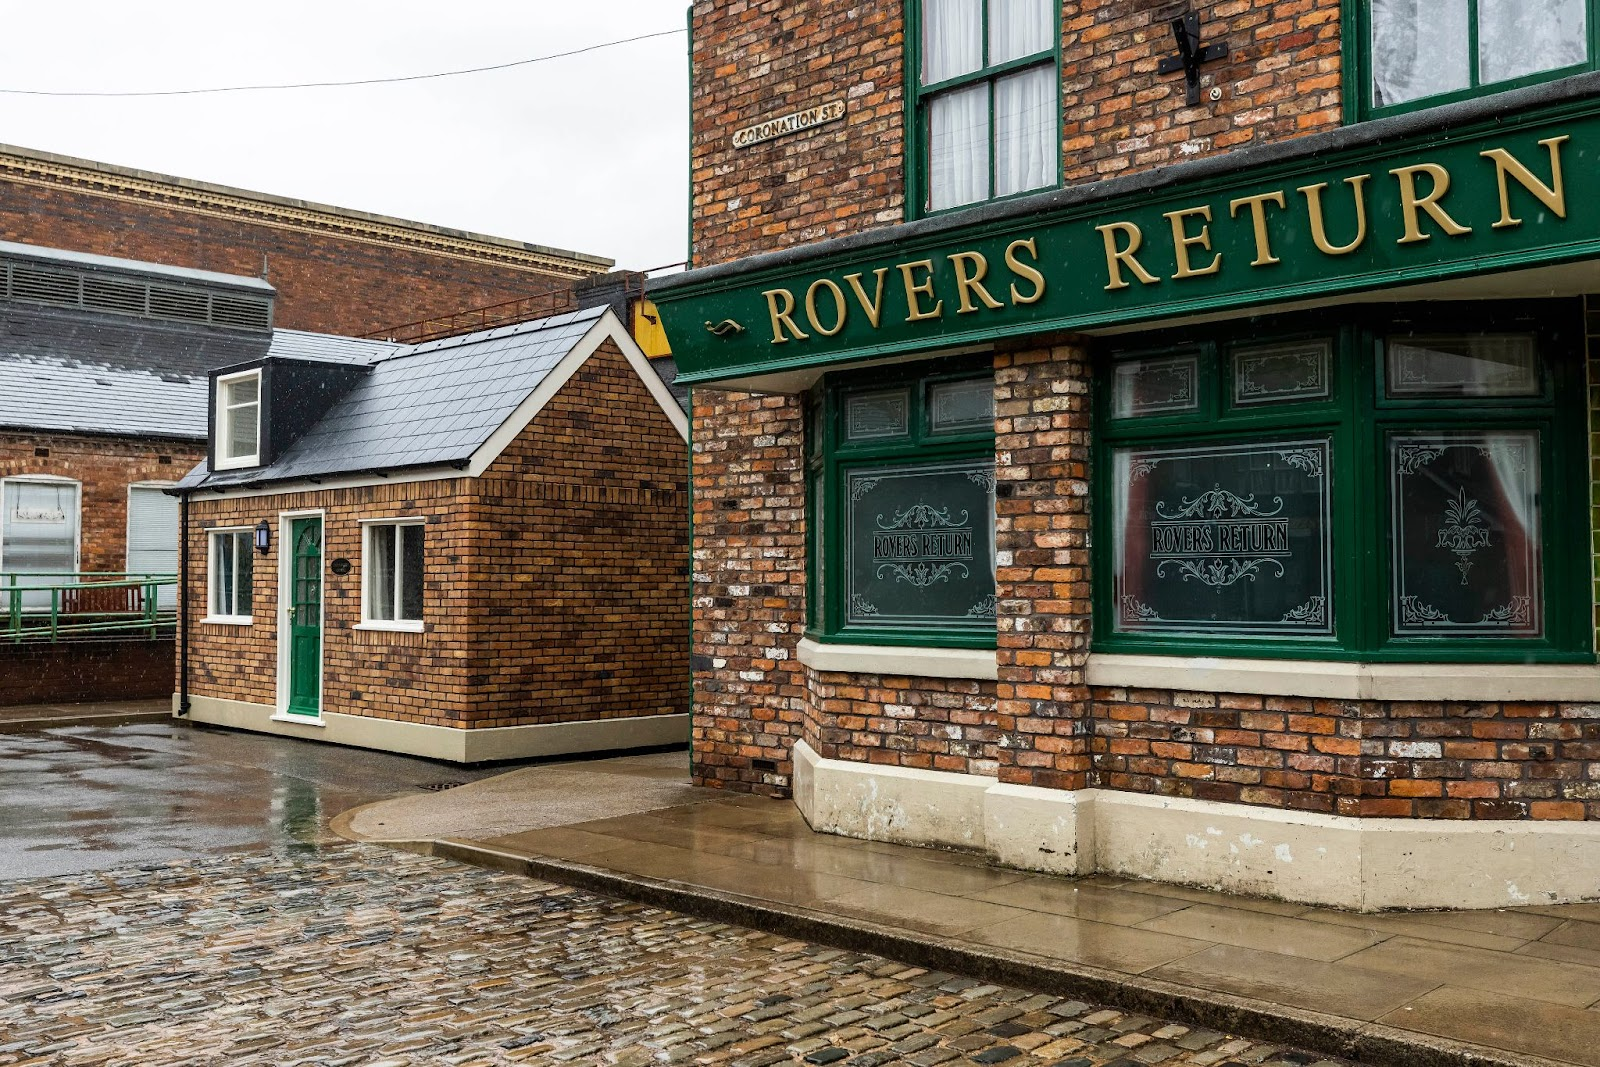 You can now spend a night on the set of Coronation Street with Airbnb, The Manc